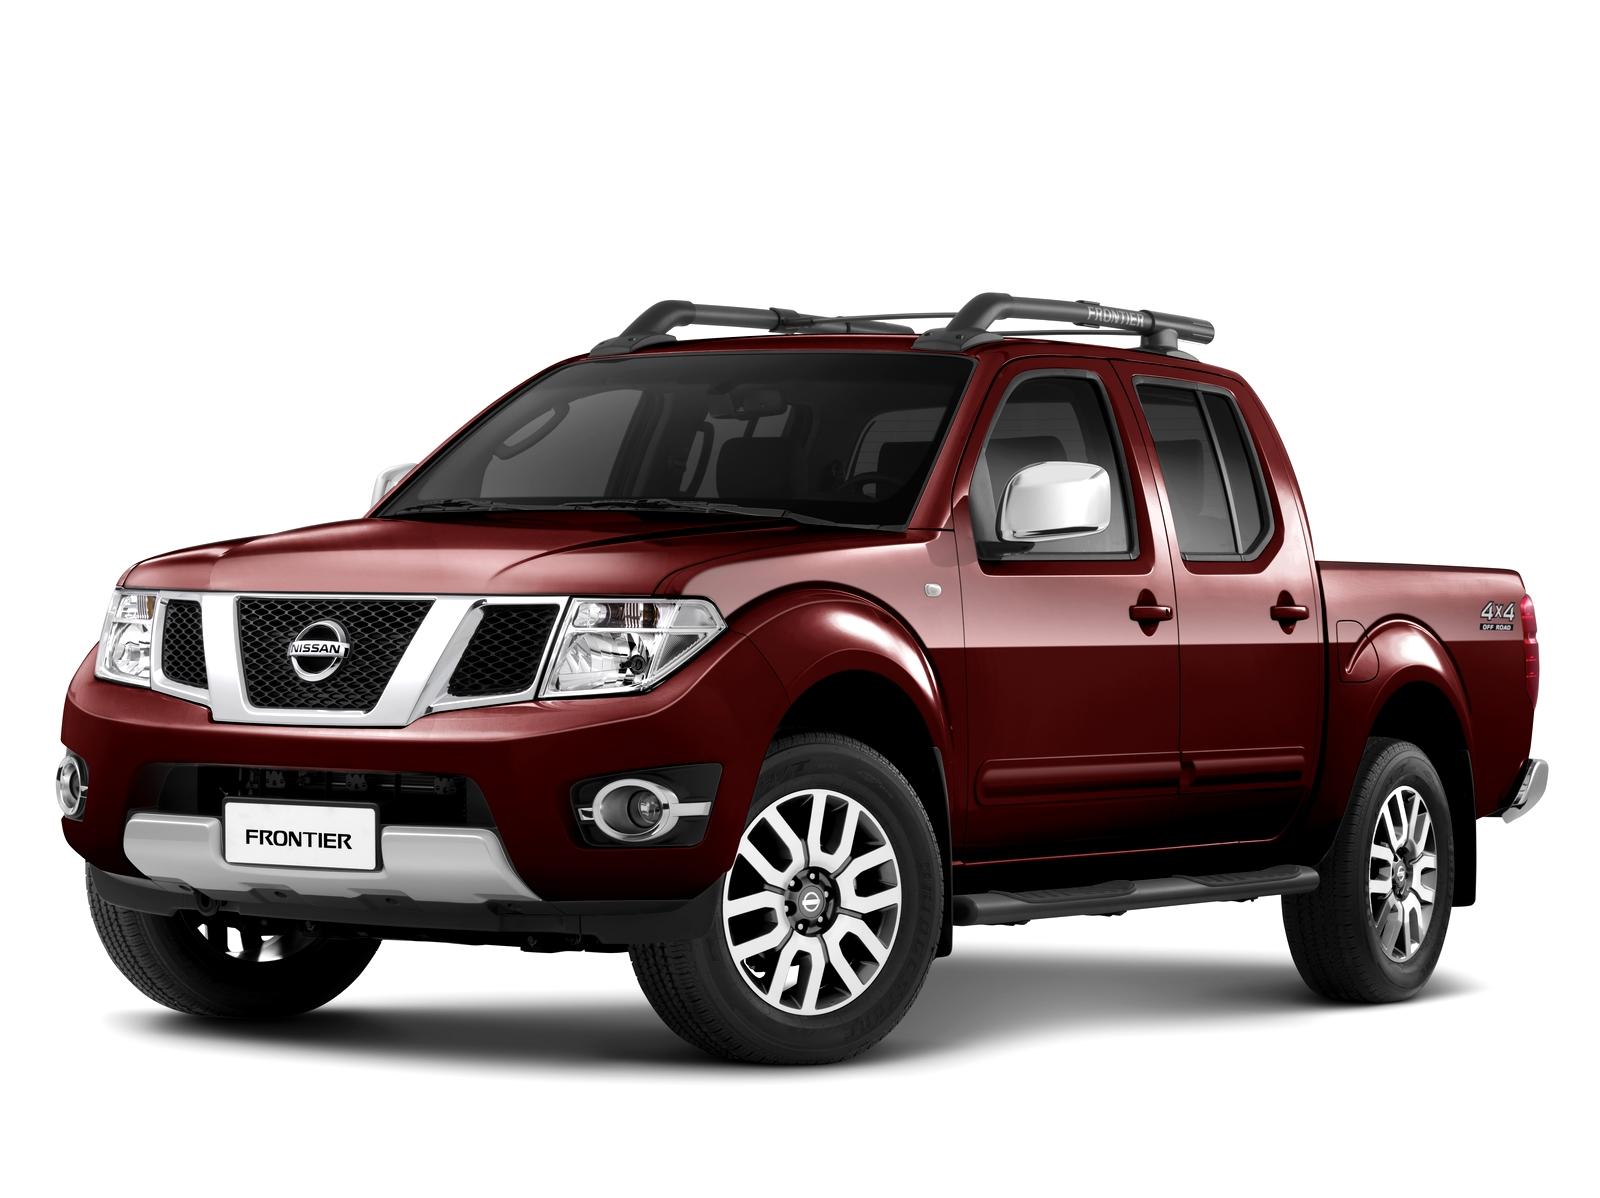 New Camioneta 4x2 Doble Cabina Nissan 2016 Release, Reviews and Models